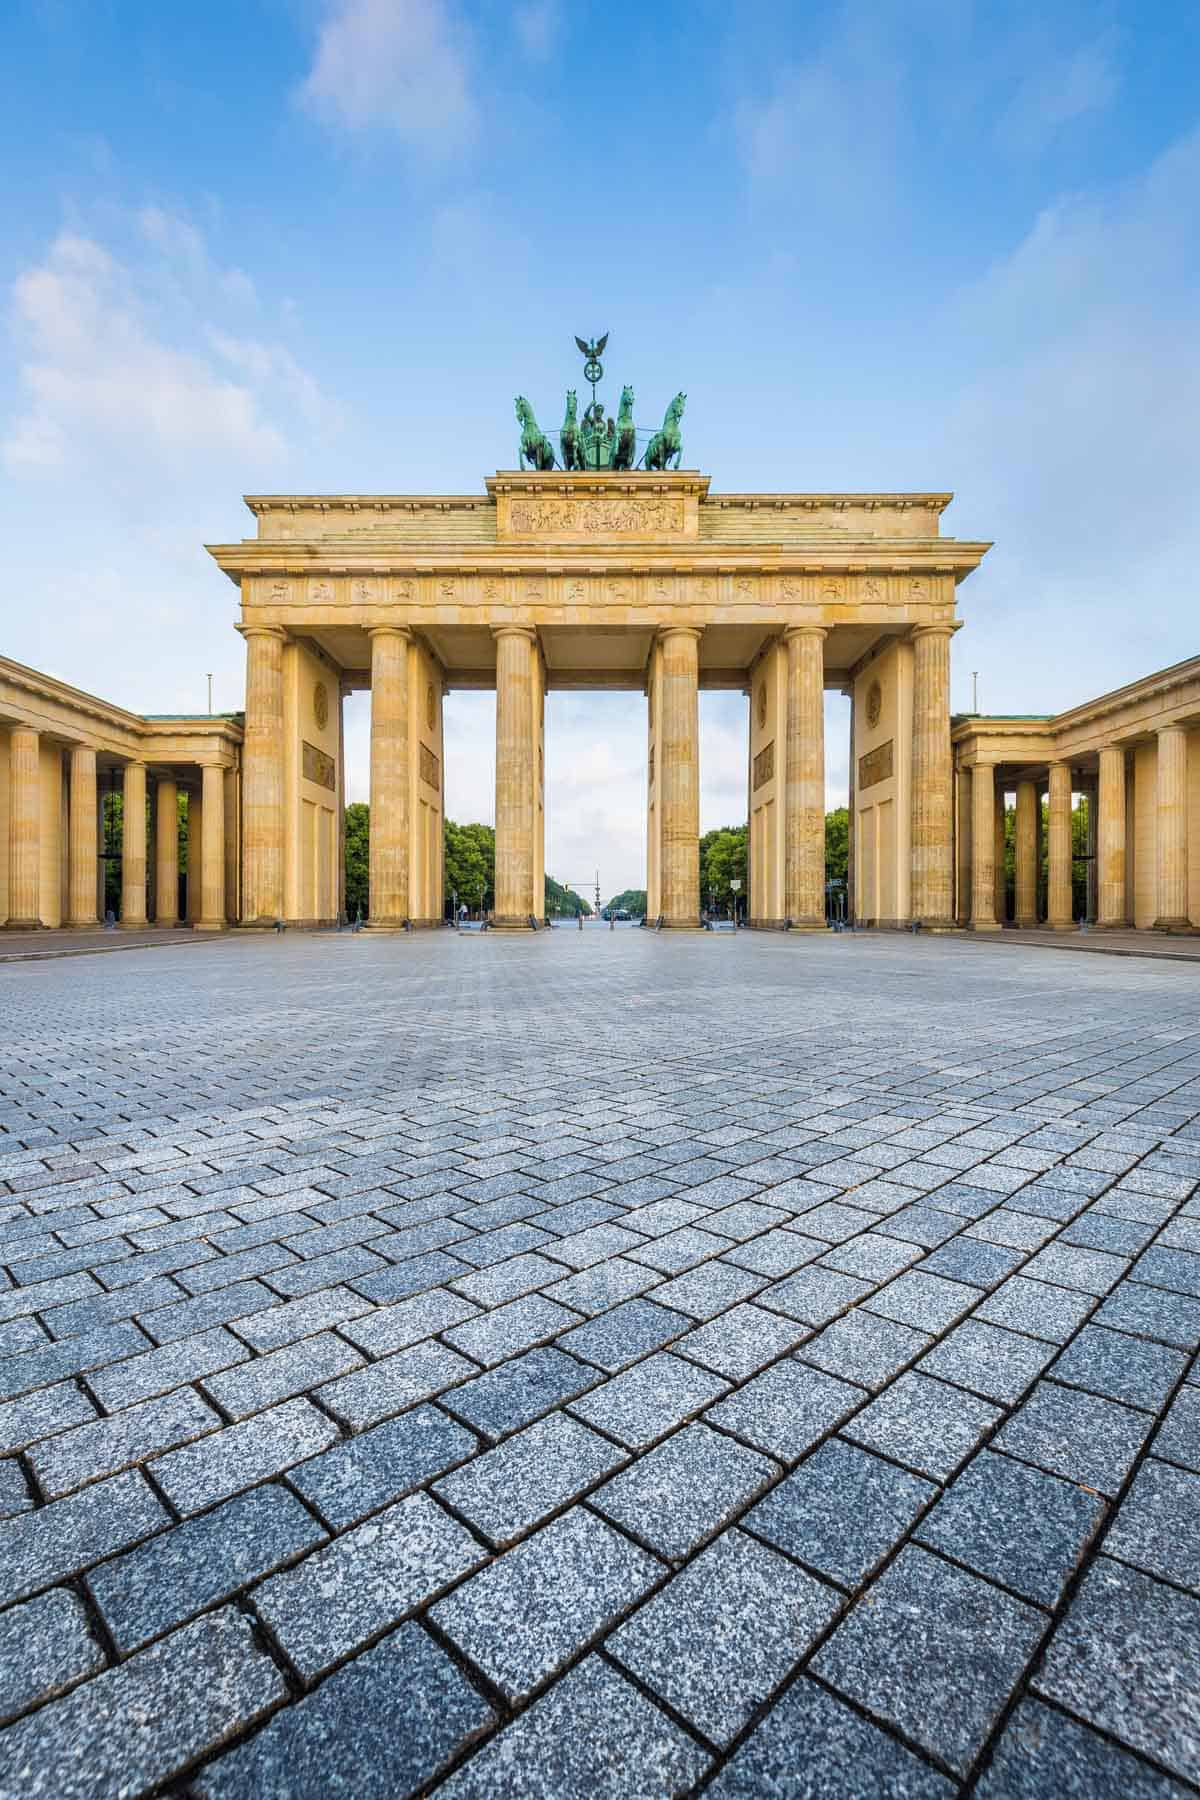 Europe in September: Top 10 Places to Visit